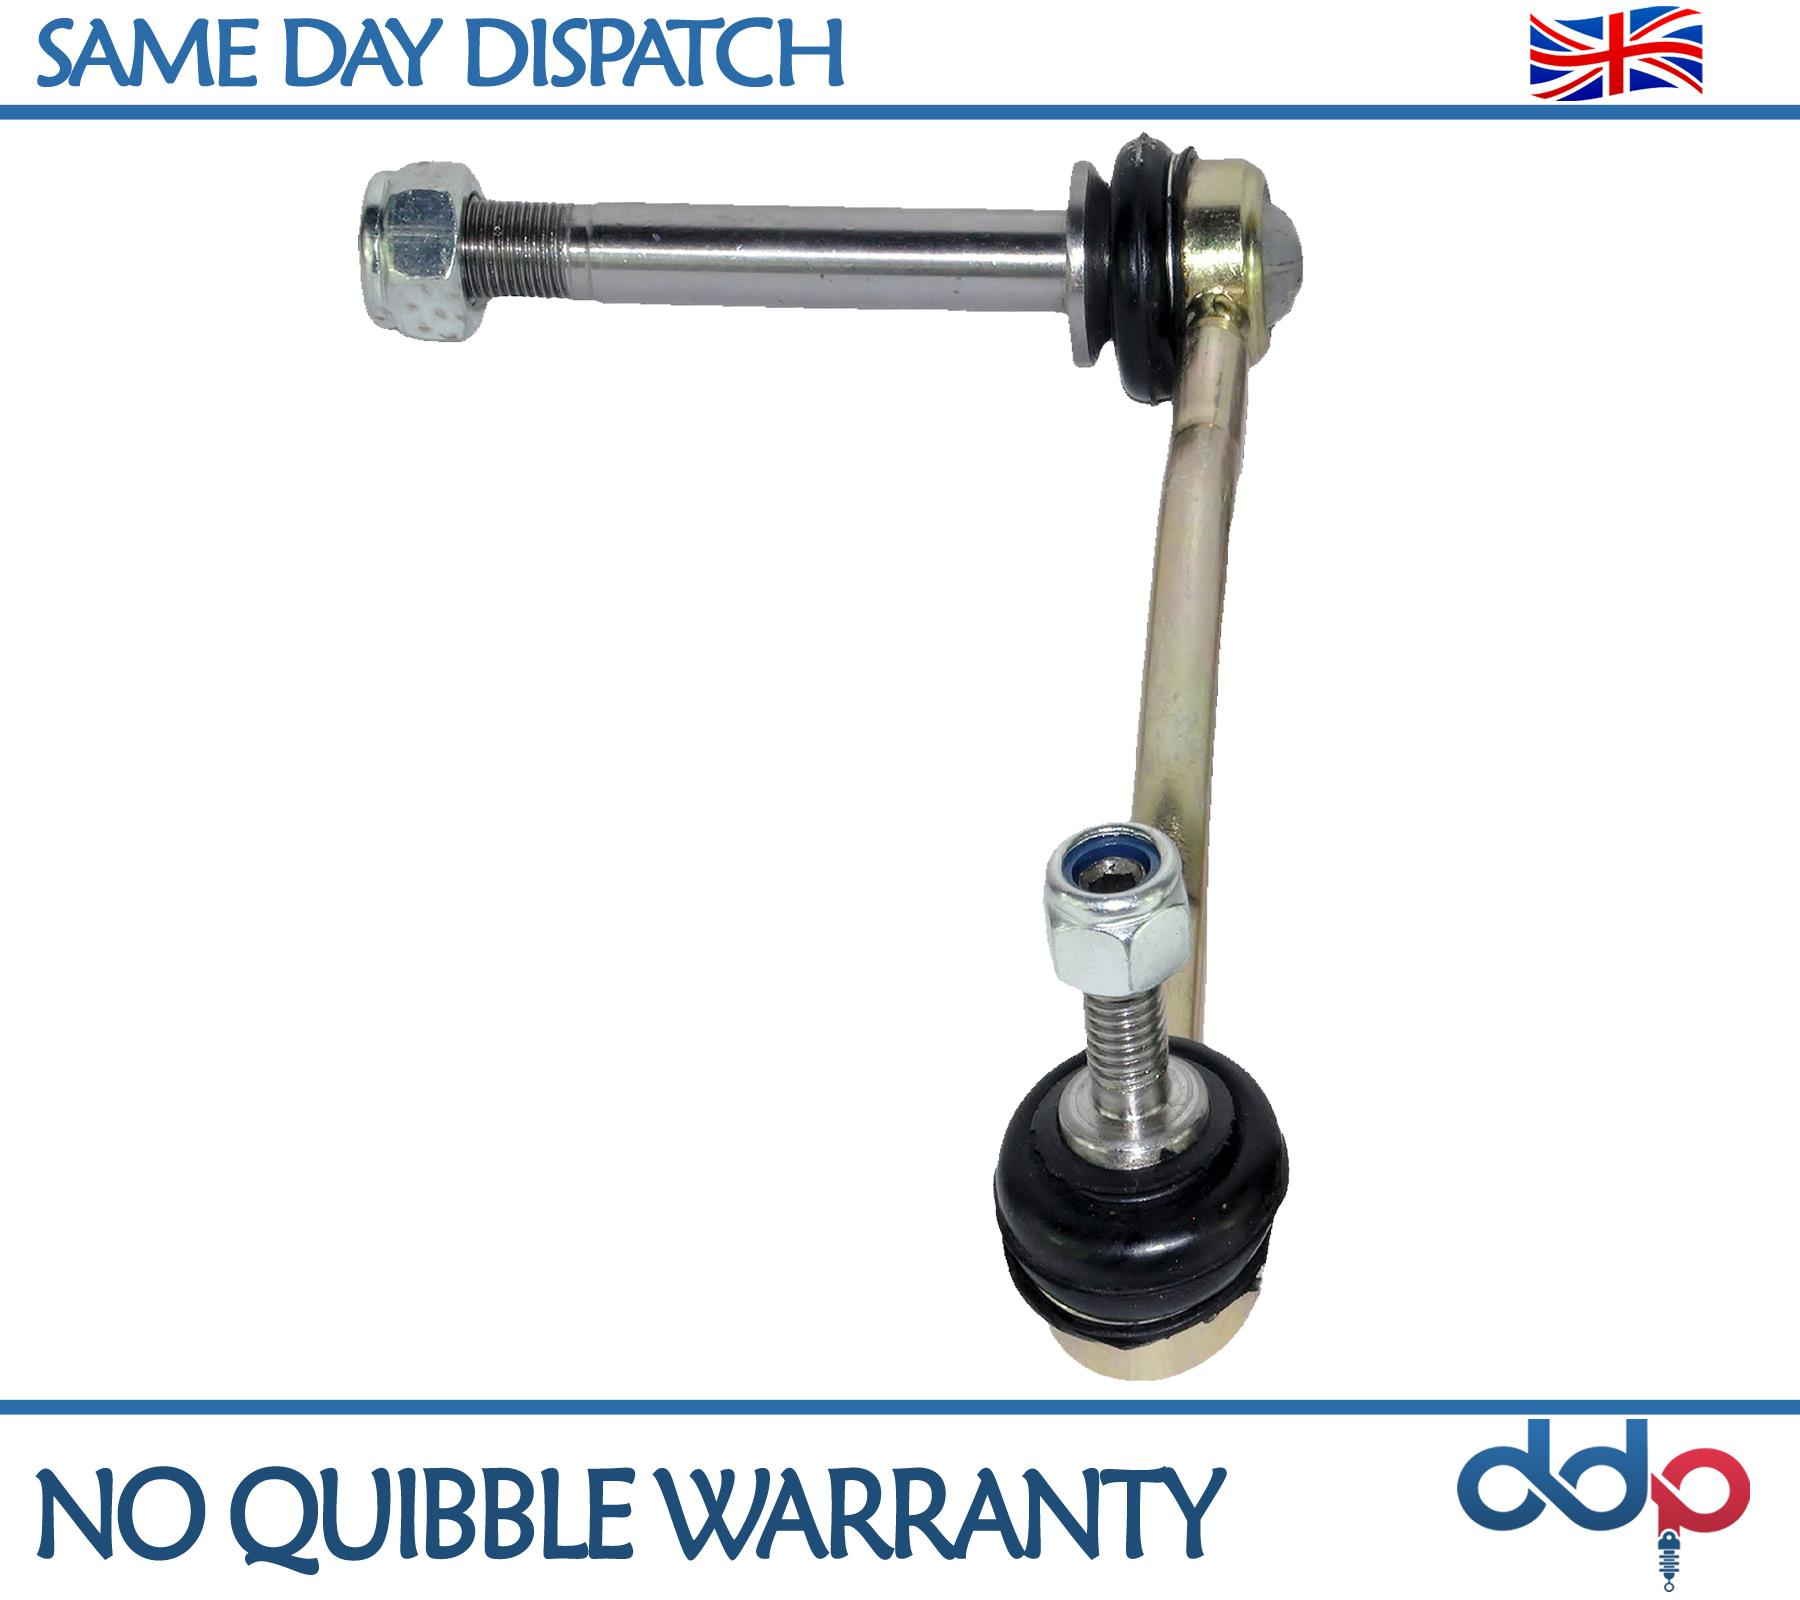 2 x FOR PEUGEOT 407 508 2005-ON REAR PAIR STABILISER ANTI ROLL BAR DROP LINK